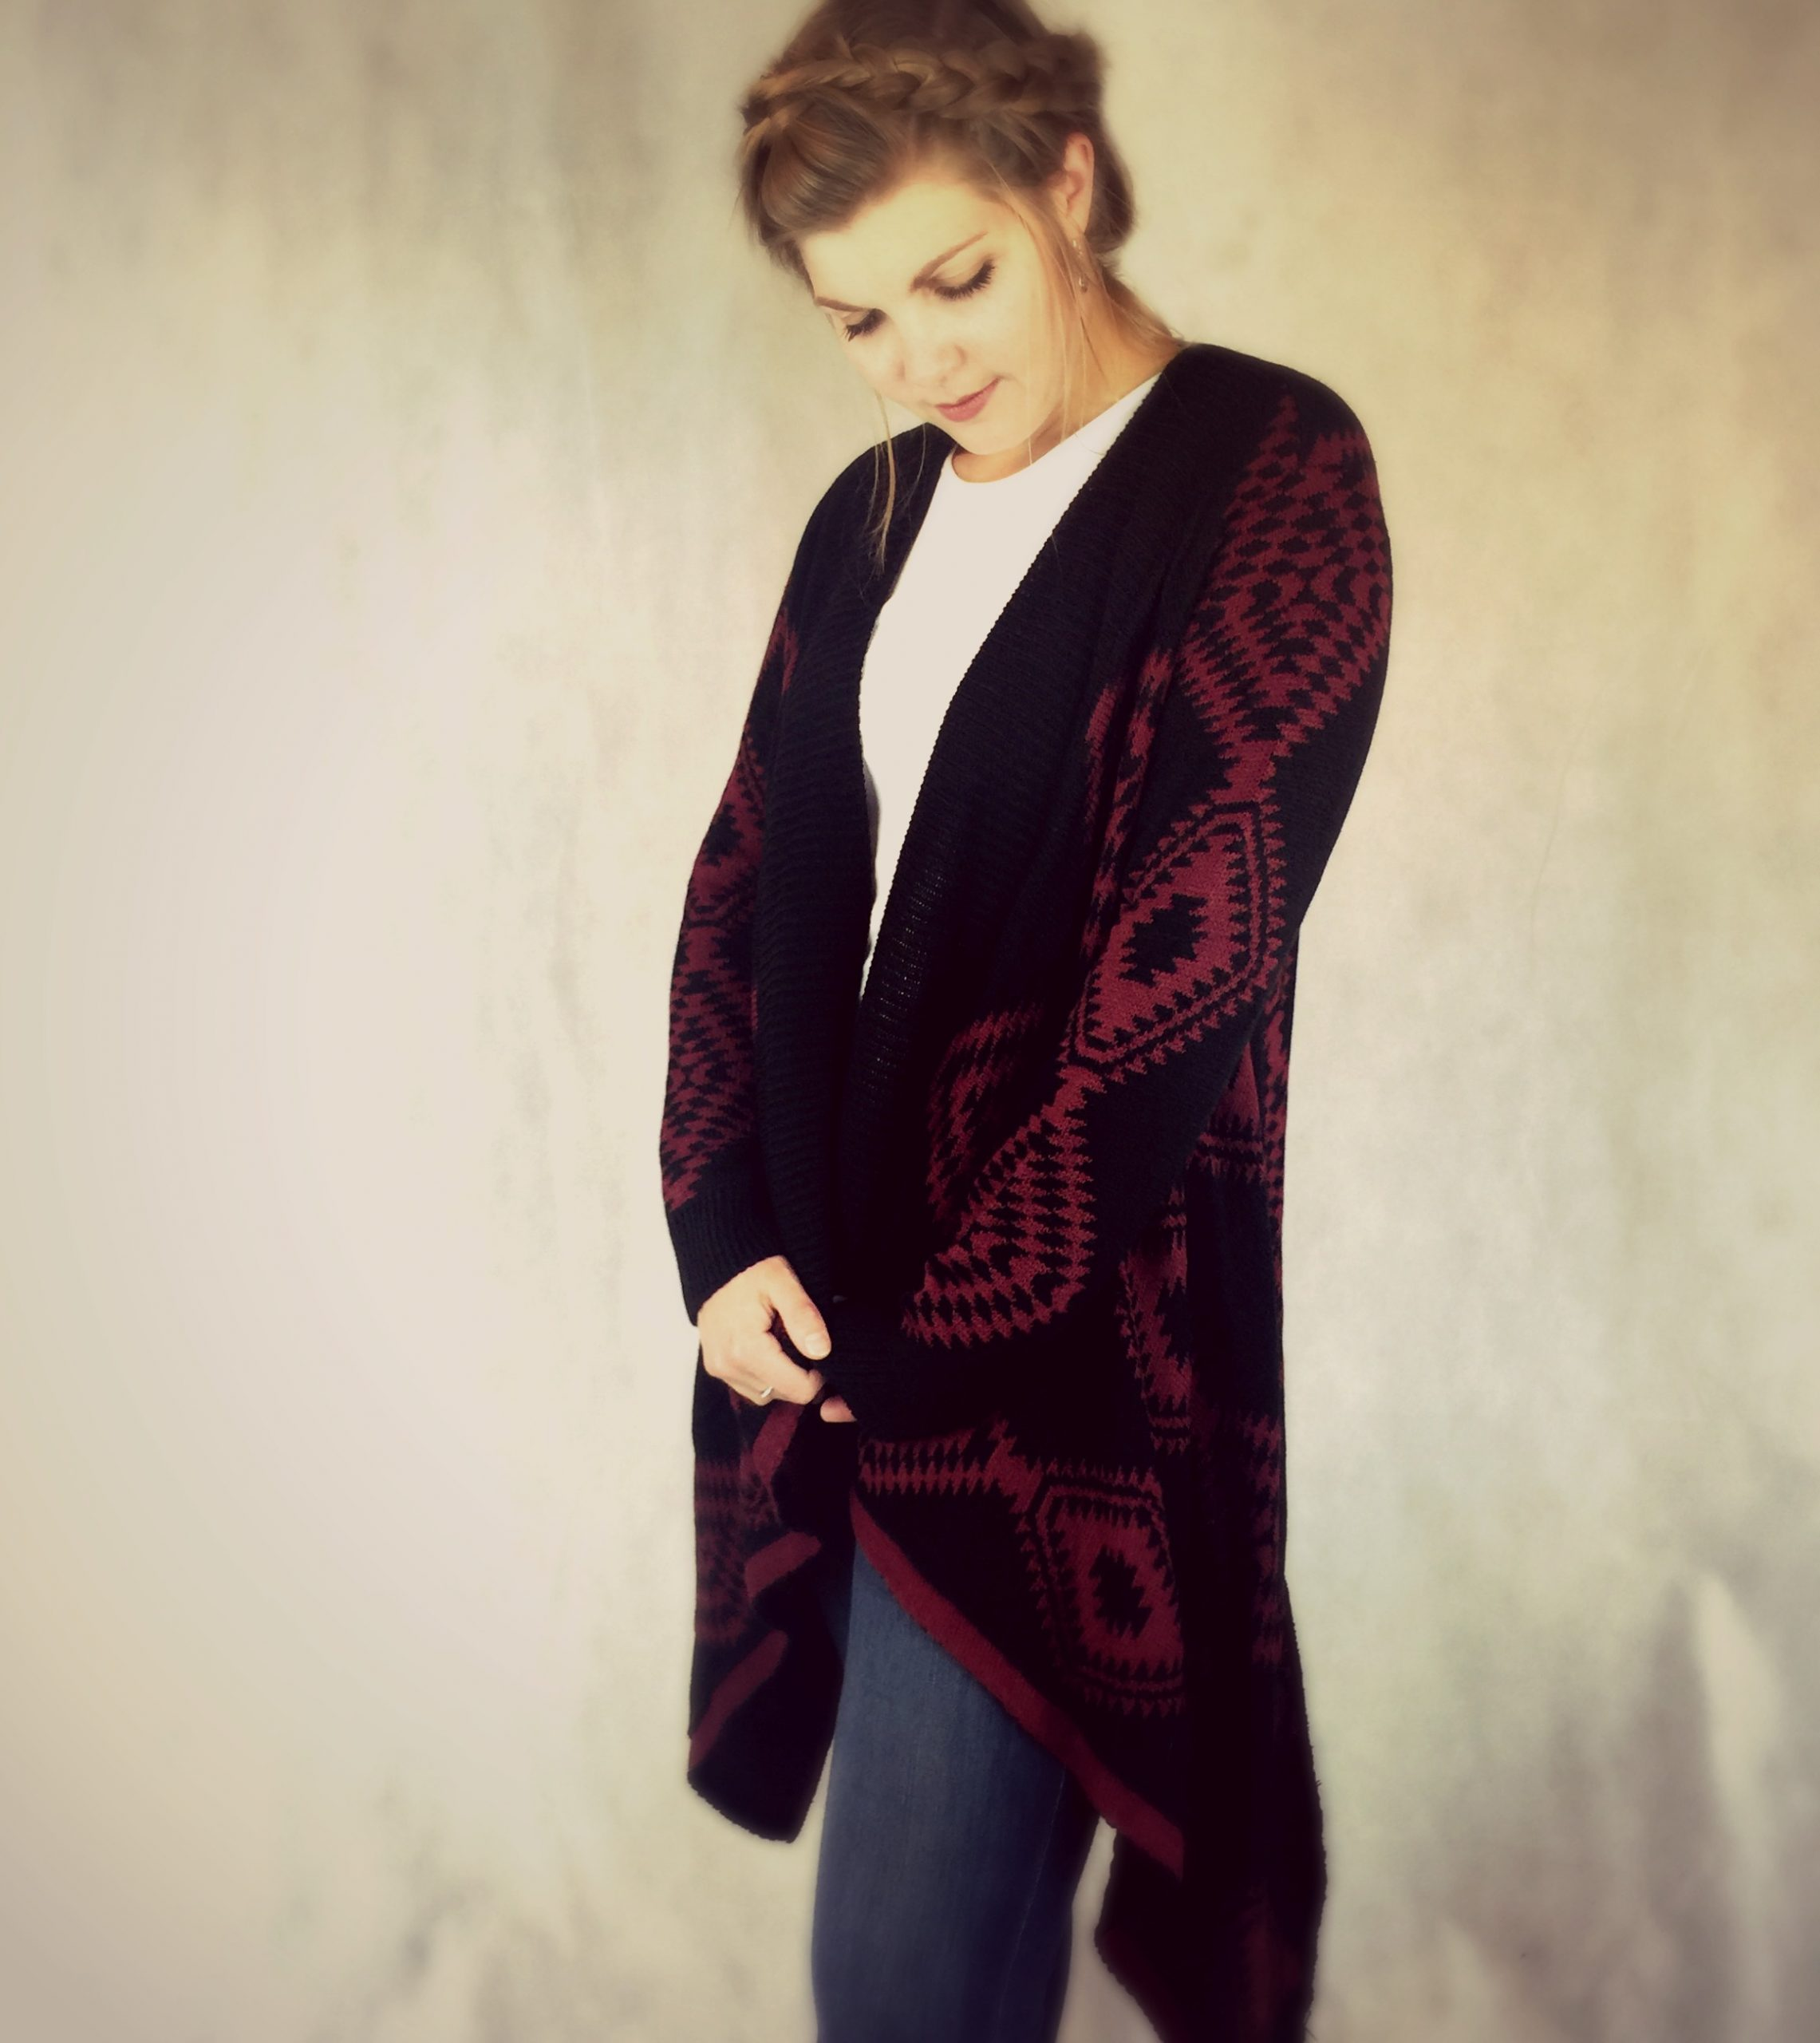 Ladies long length poncho style chunky cardigan in burgundy and black aztec knit